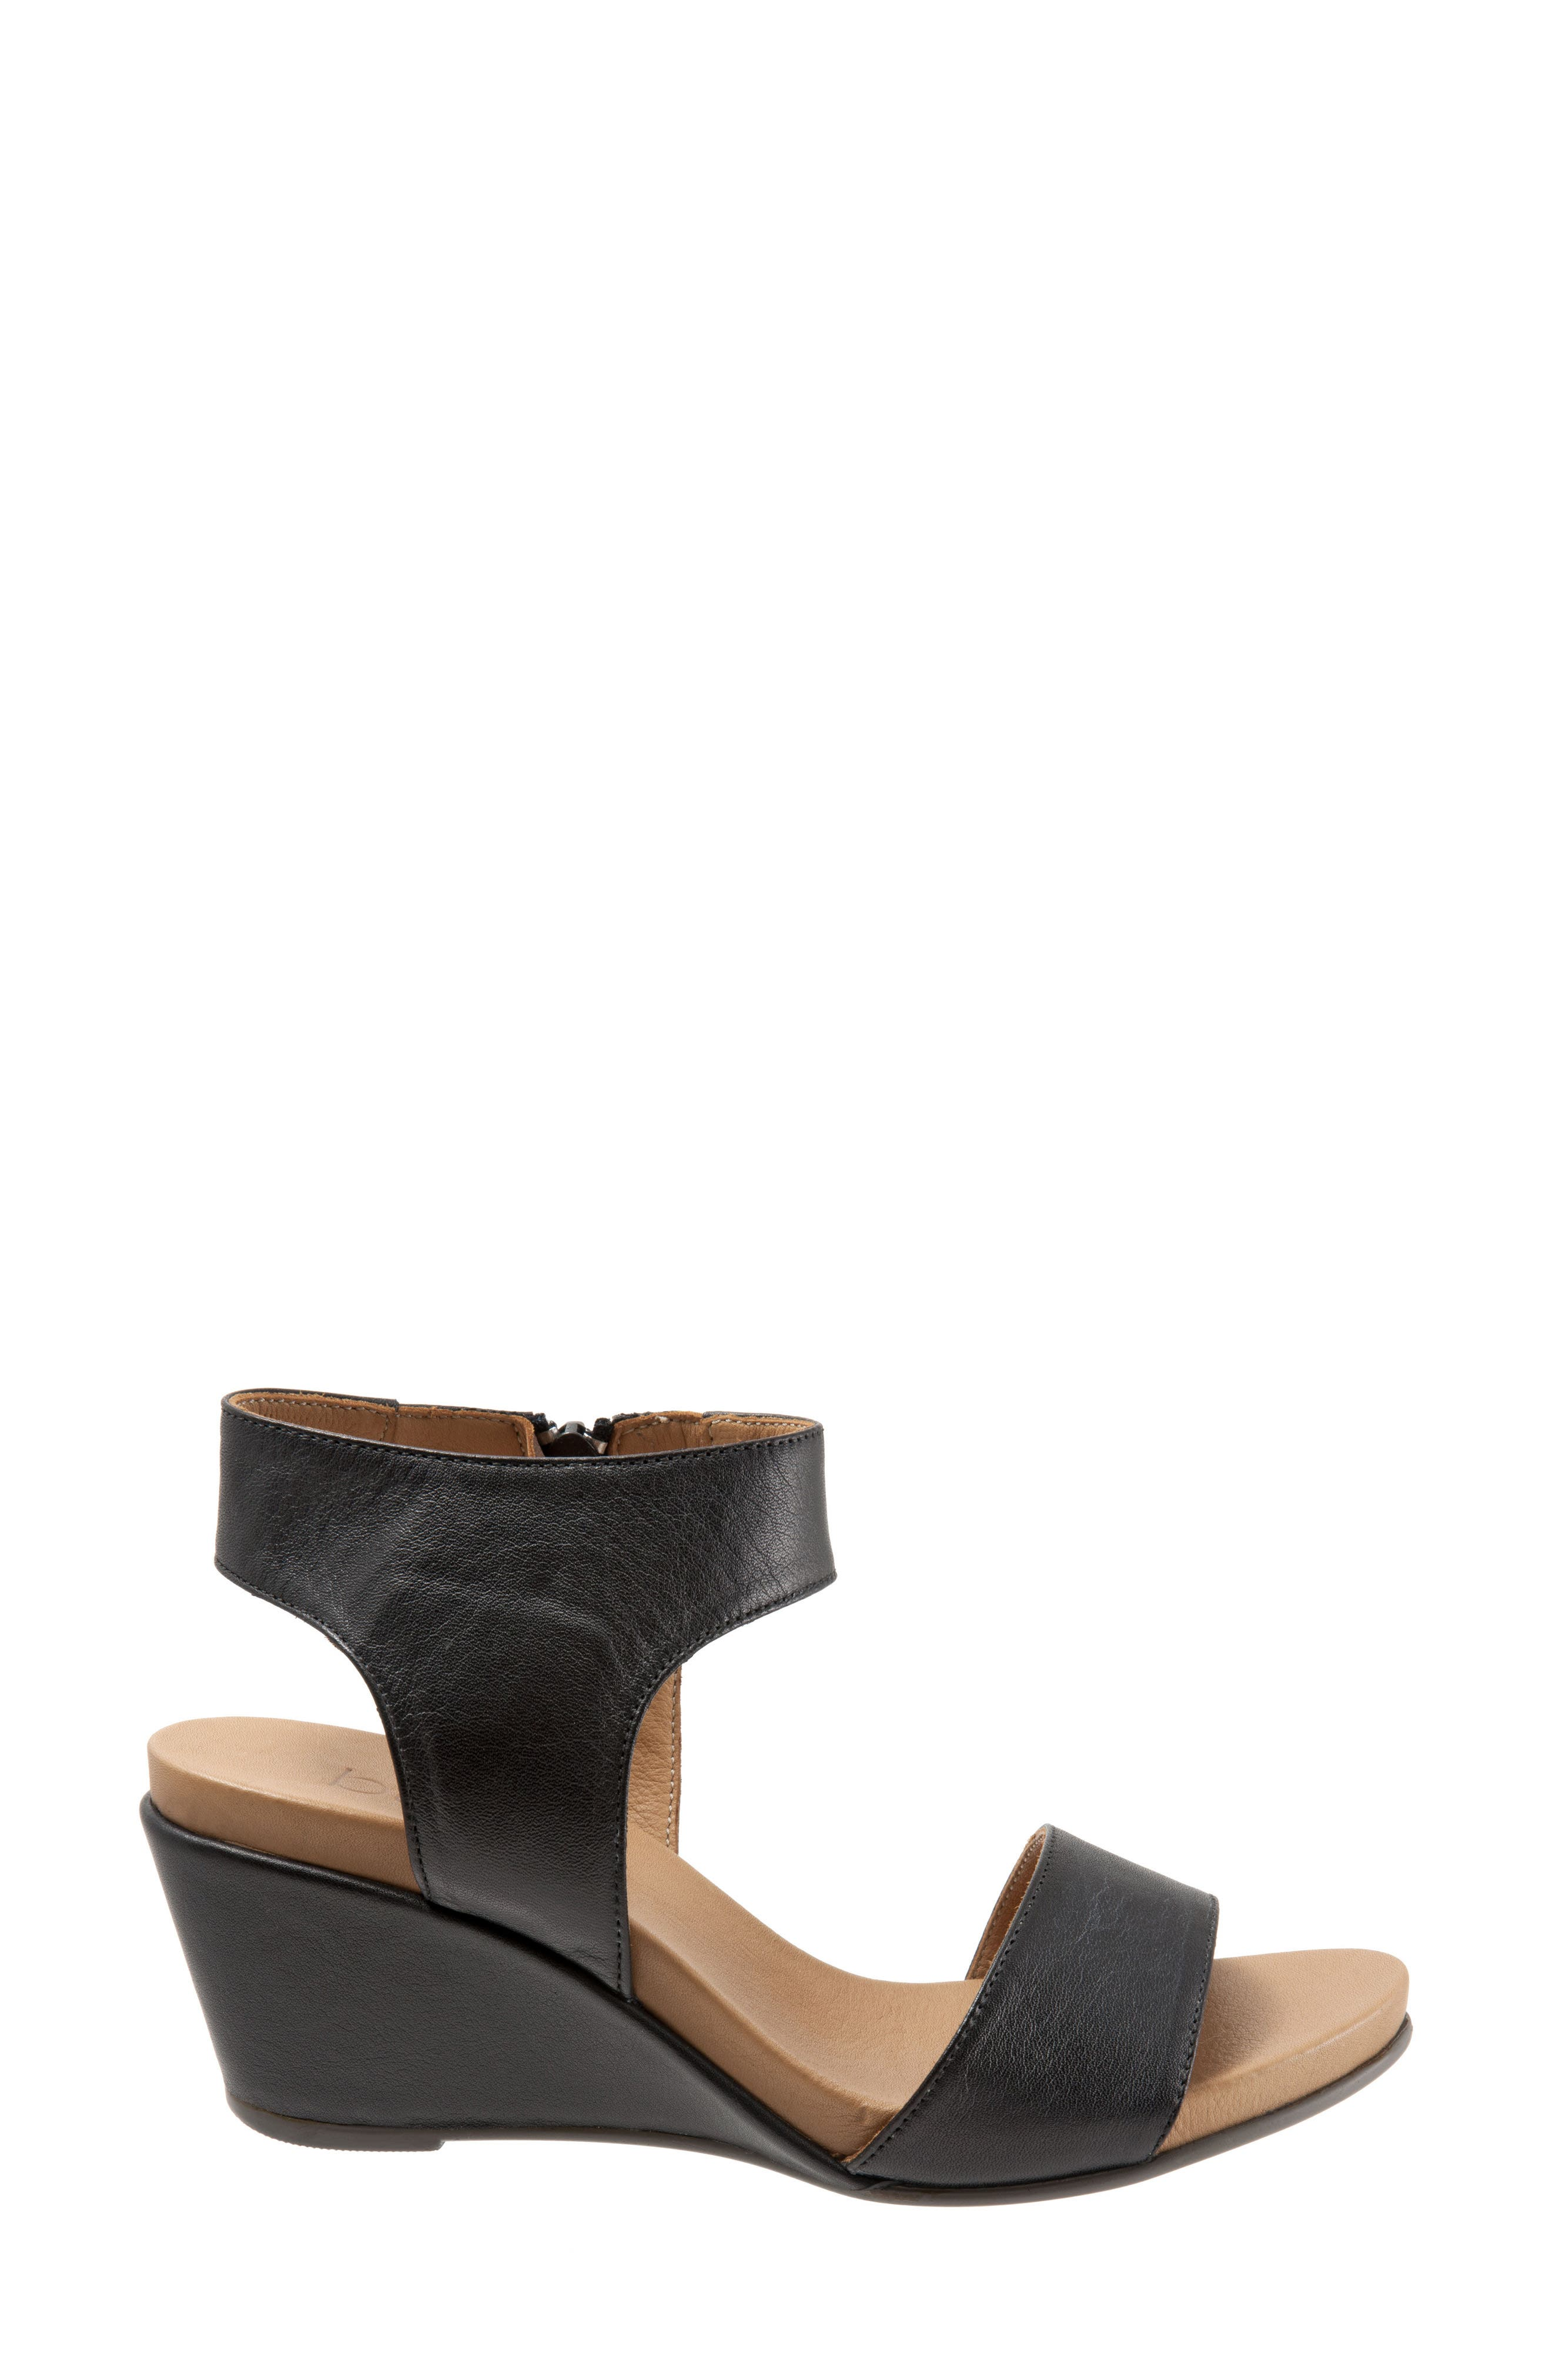 Ida Wedge Sandal,                             Alternate thumbnail 3, color,                             Black Leather